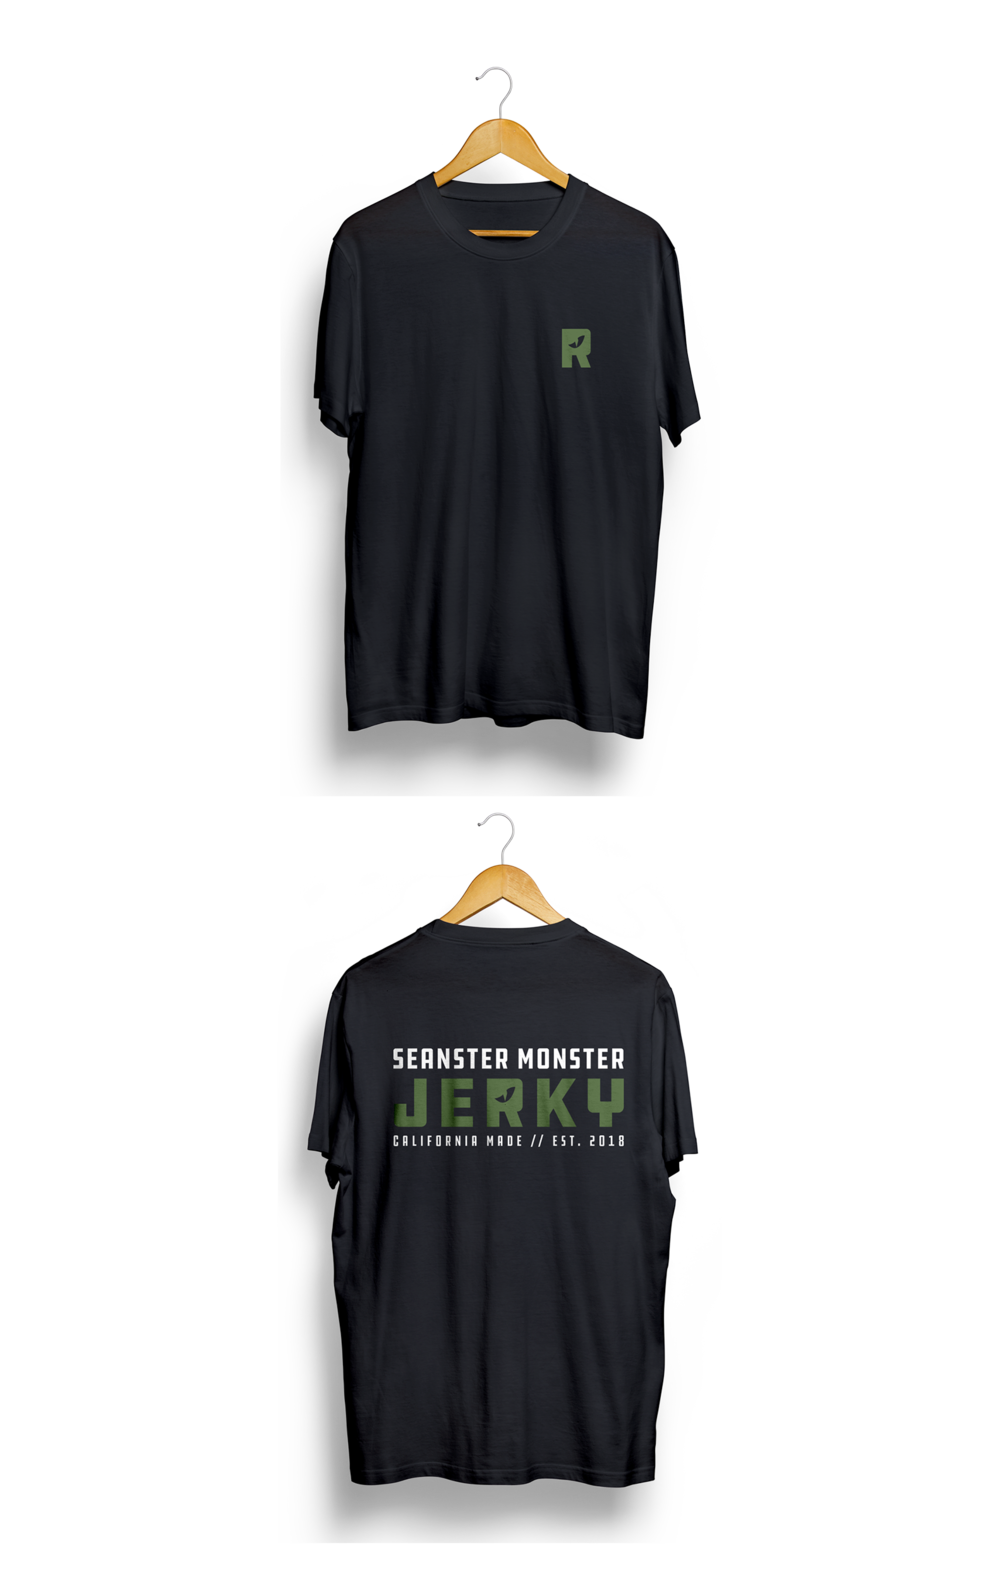 Arg_Creative_Website_Seanster_Monster_Jerky_Shirts.png